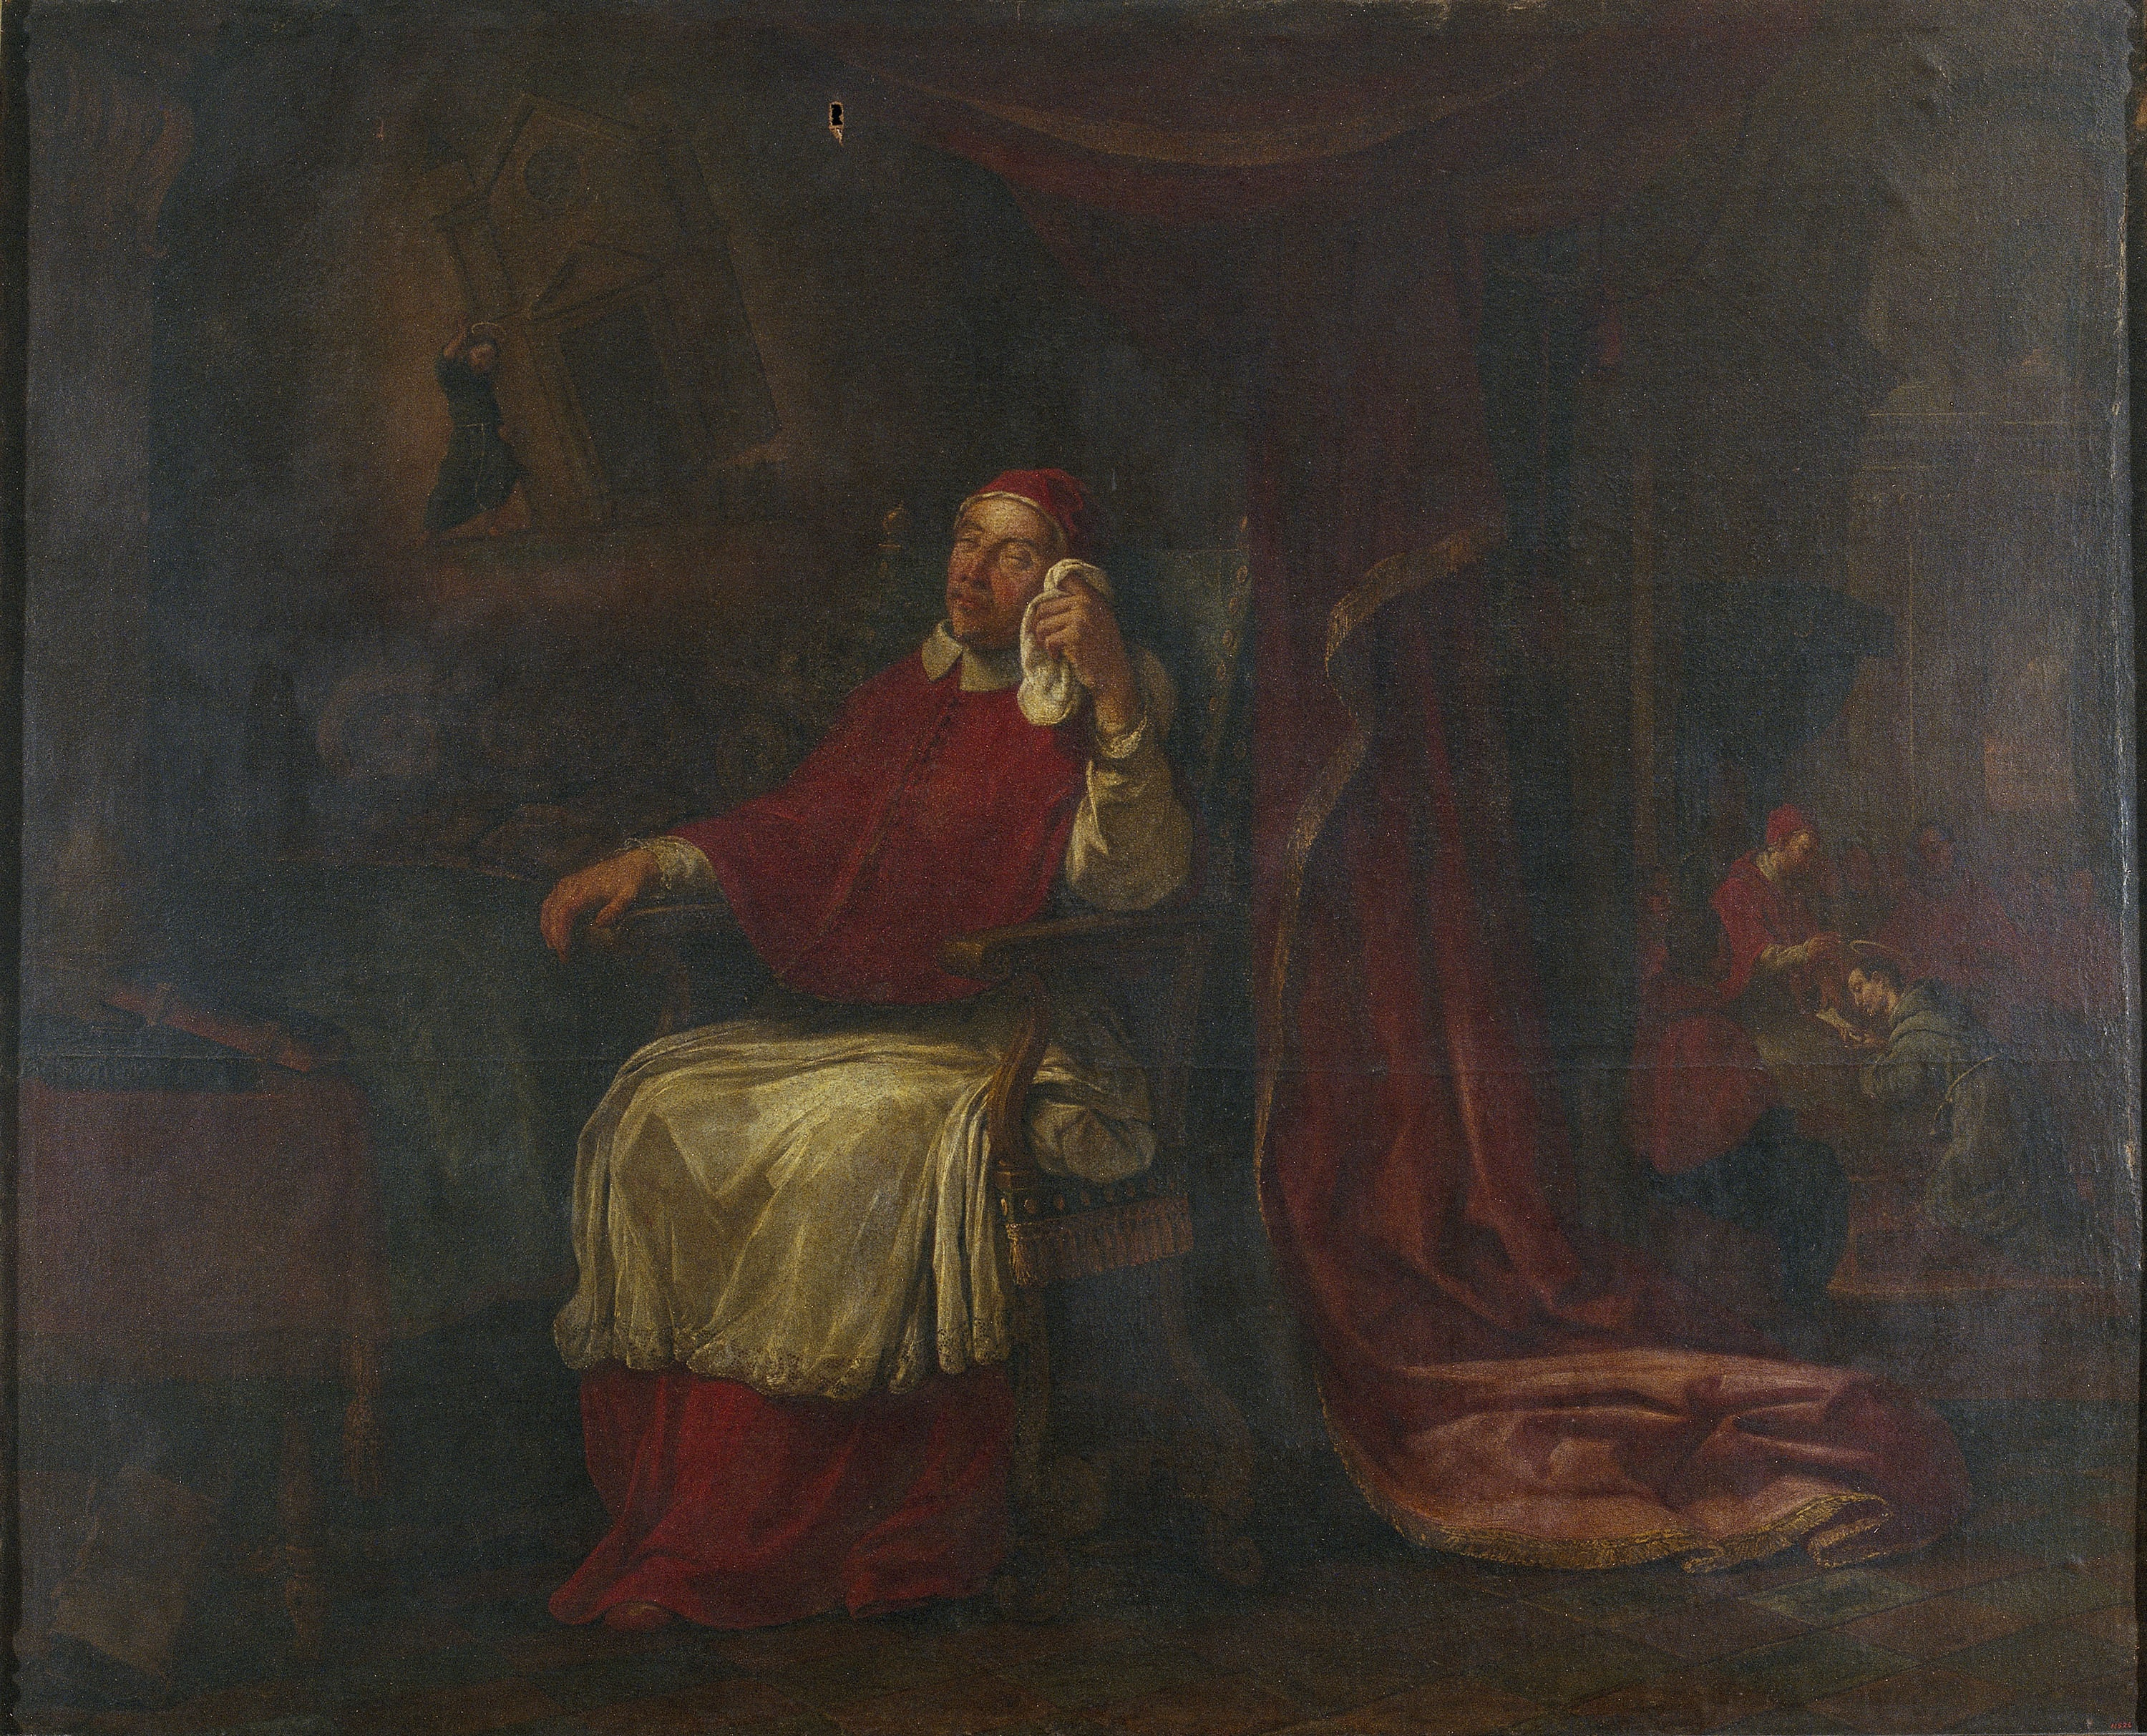 Antoni Viladomat - Vision in a Dream of the Pope Innocent III and the Confirmation of the Franciscan Rule - Circa 1729-1733